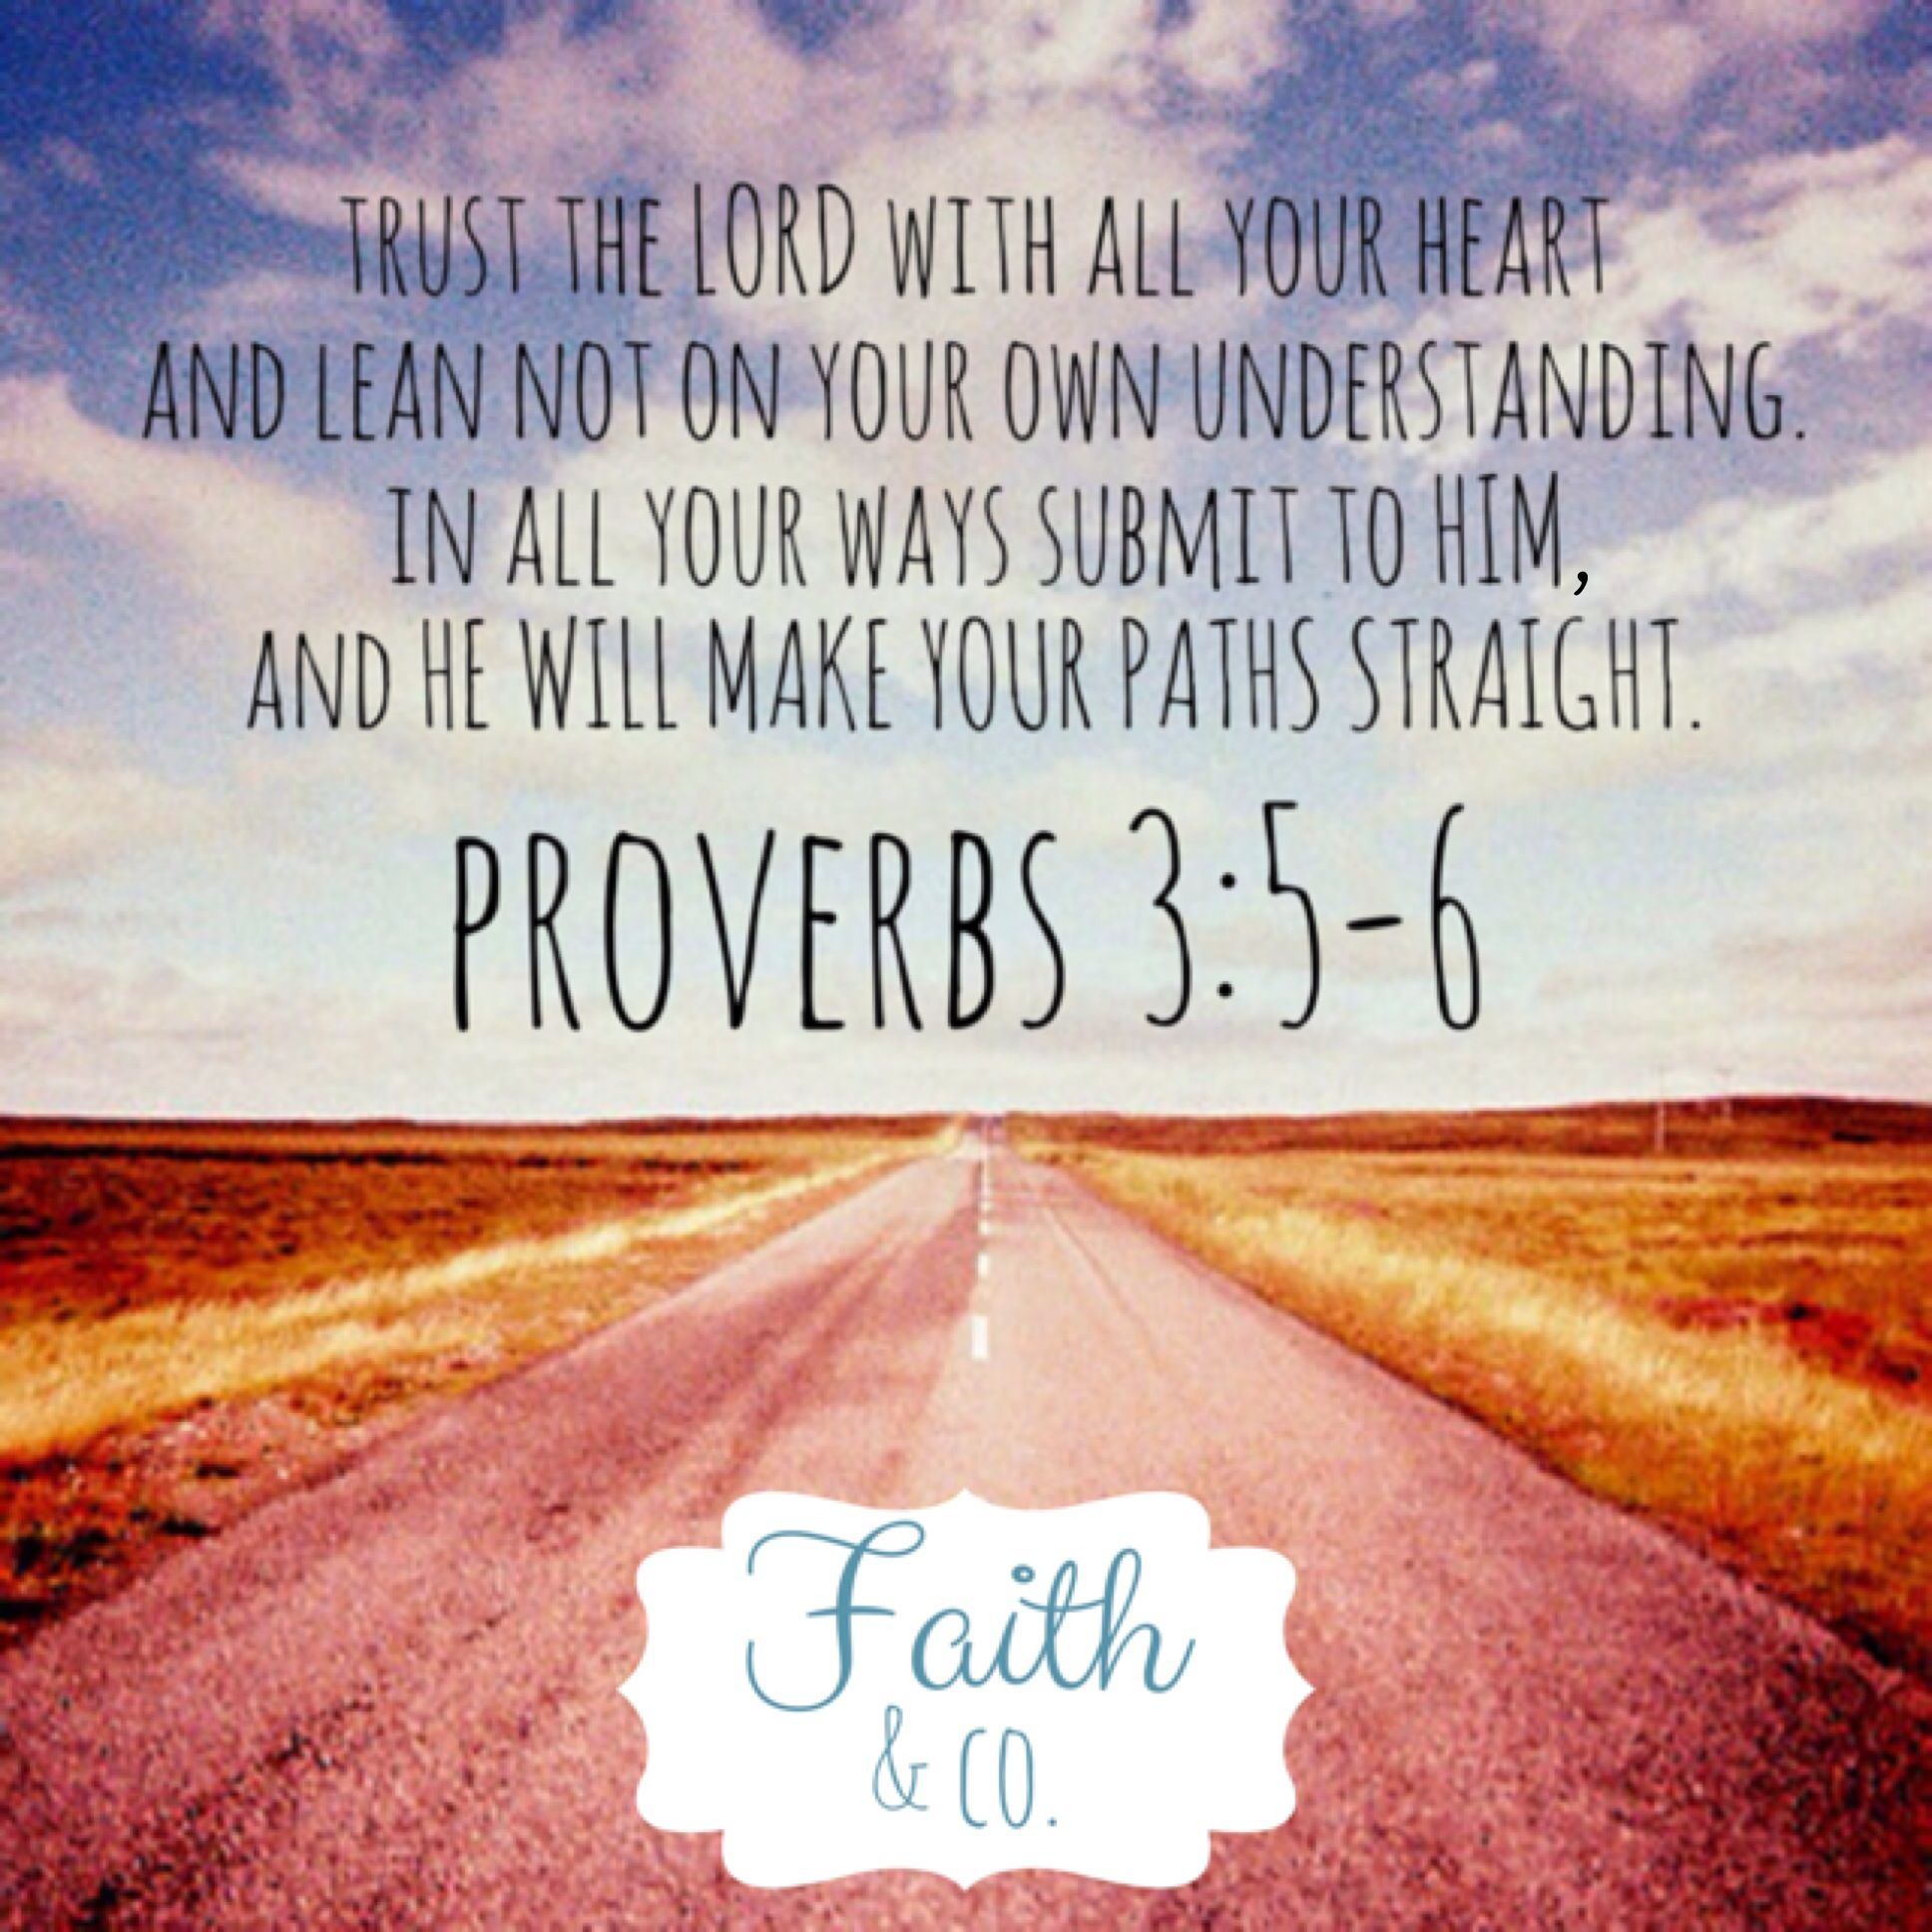 Bible Quotes About Faith Cool Images For  Bible Verses About Strength And Faith In Hard Times . Inspiration